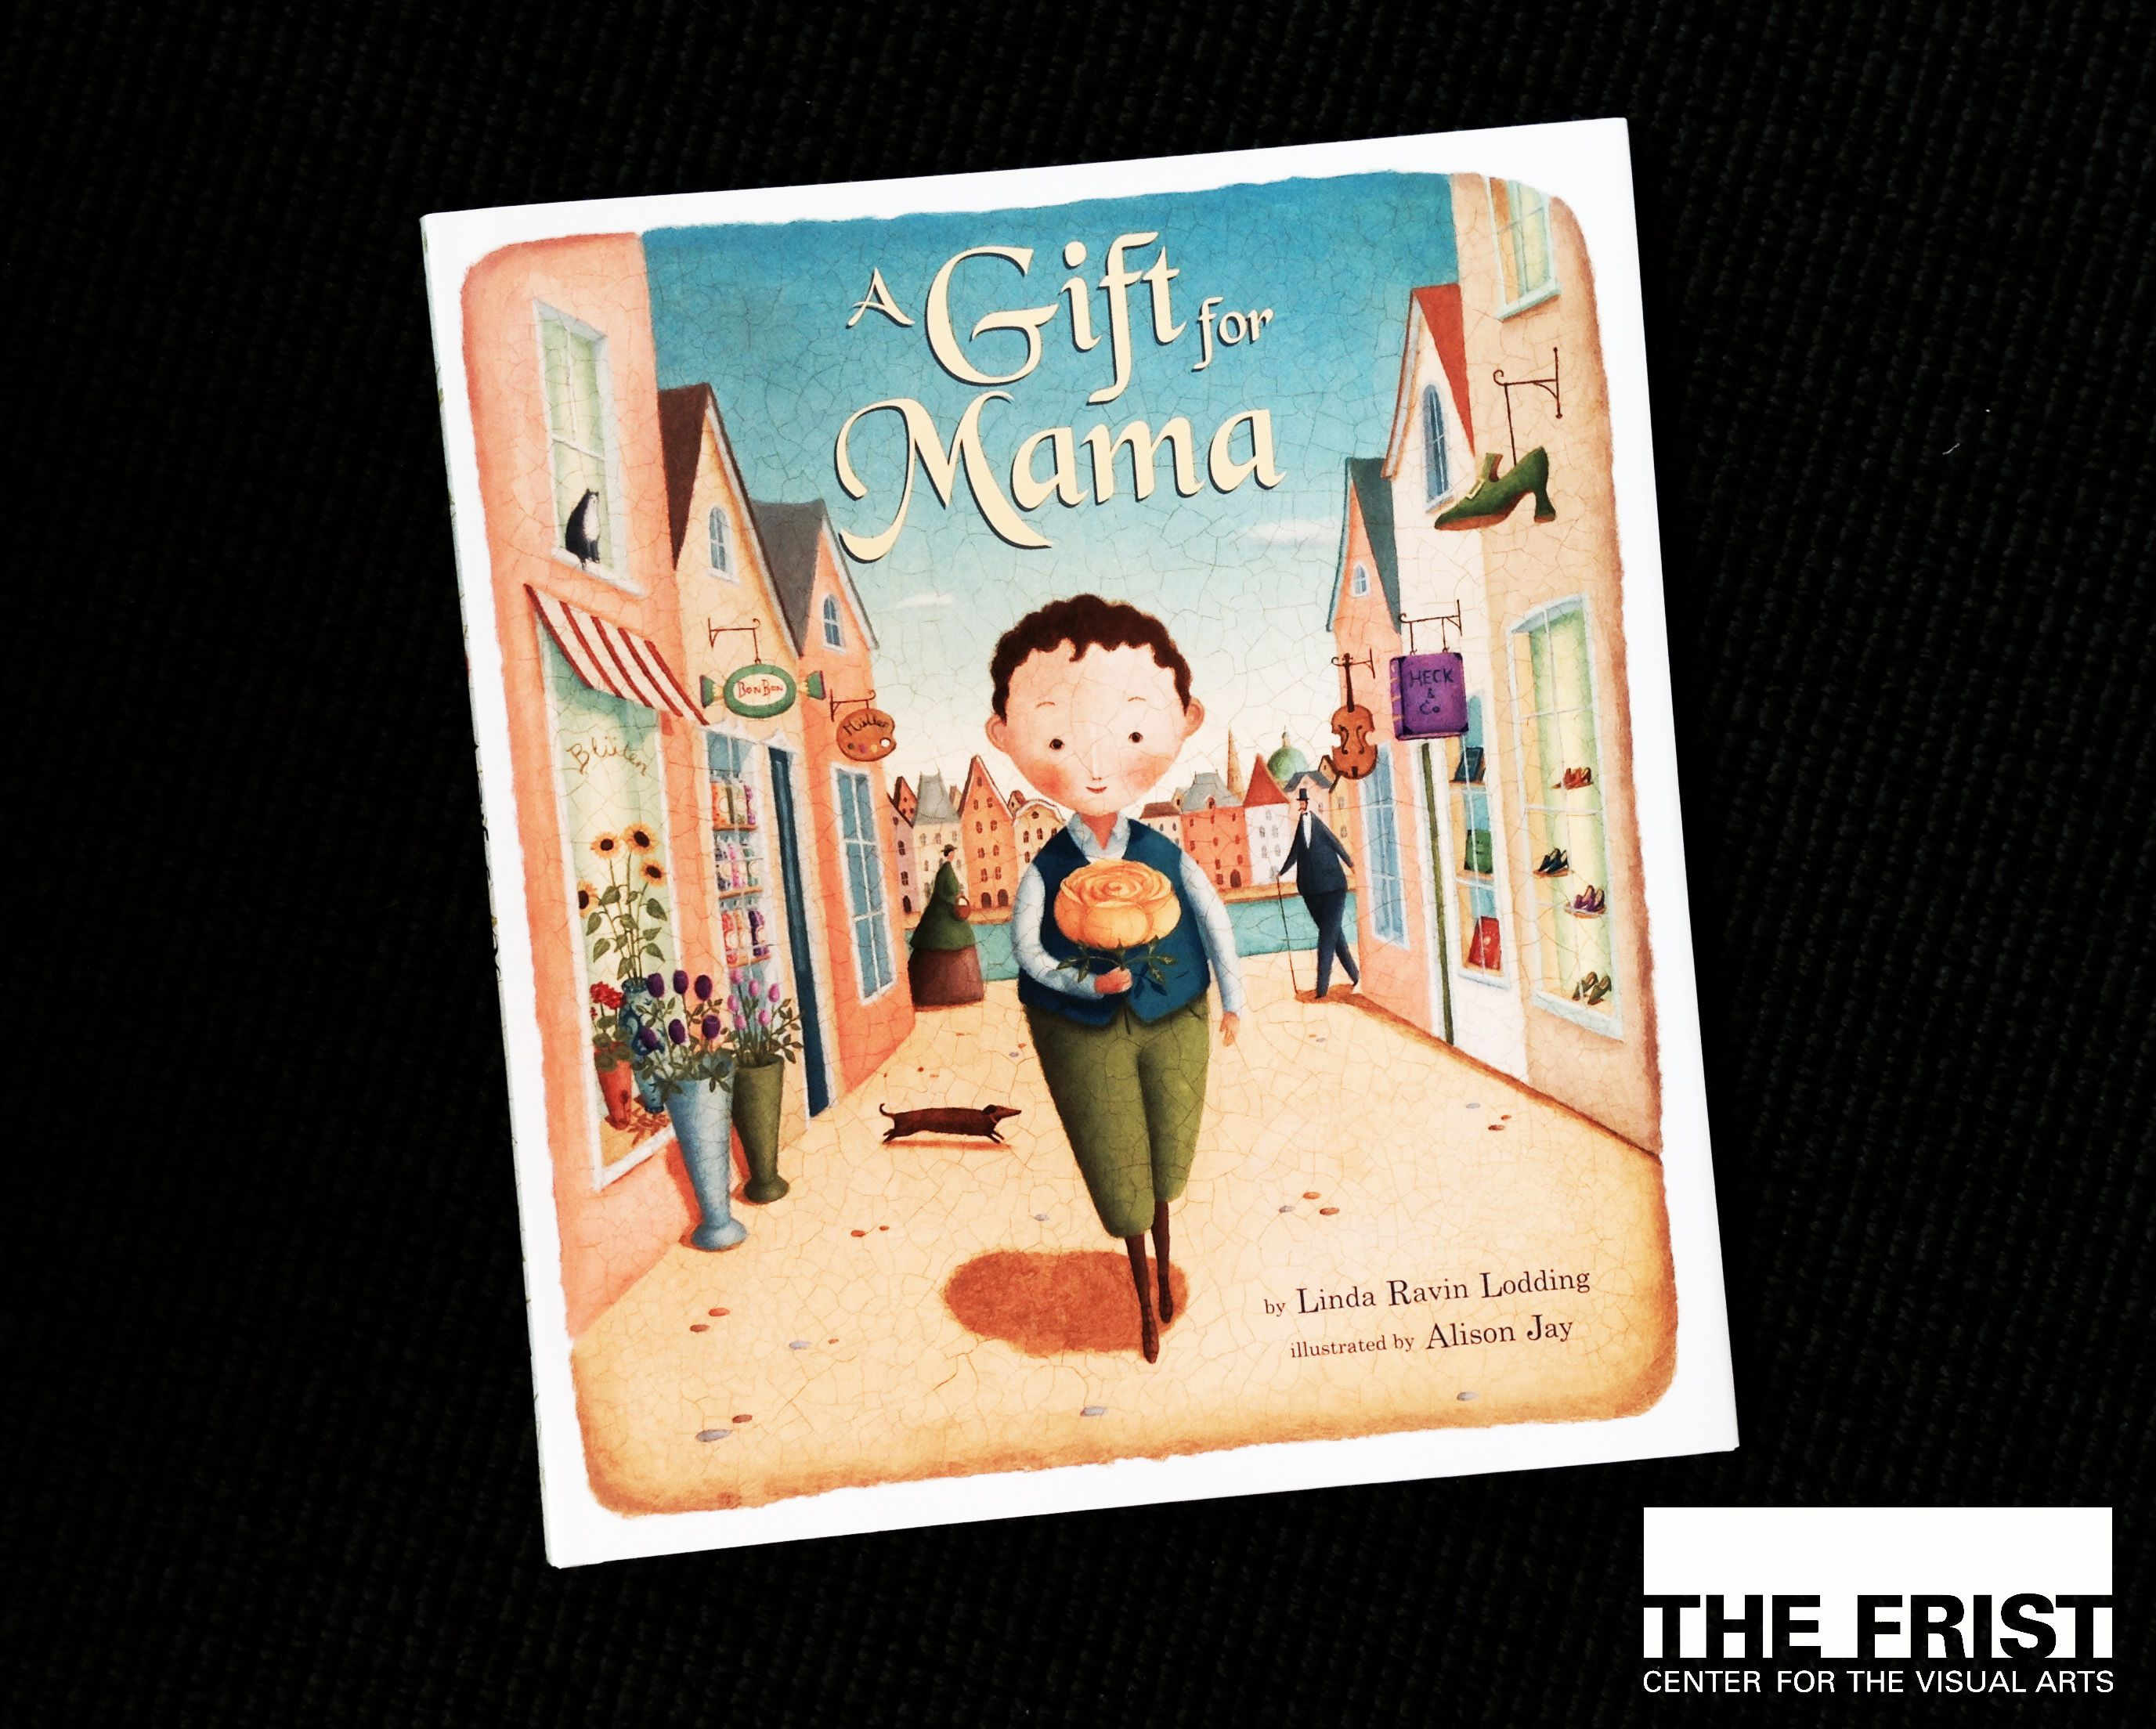 Accompany Oskar through the bustling streets of Vienna as he searches for the perfect birthday present for his Mama. What will he choose, a flower, a paint brush, some sheet music? Follow Oskar as he meets new and interesting people who help him find the best birthday gift possible. Simple kindness is the theme of this children's book, available in the Frist Center's gift shop to accompany our exhibition, Wiener Werkstätte.